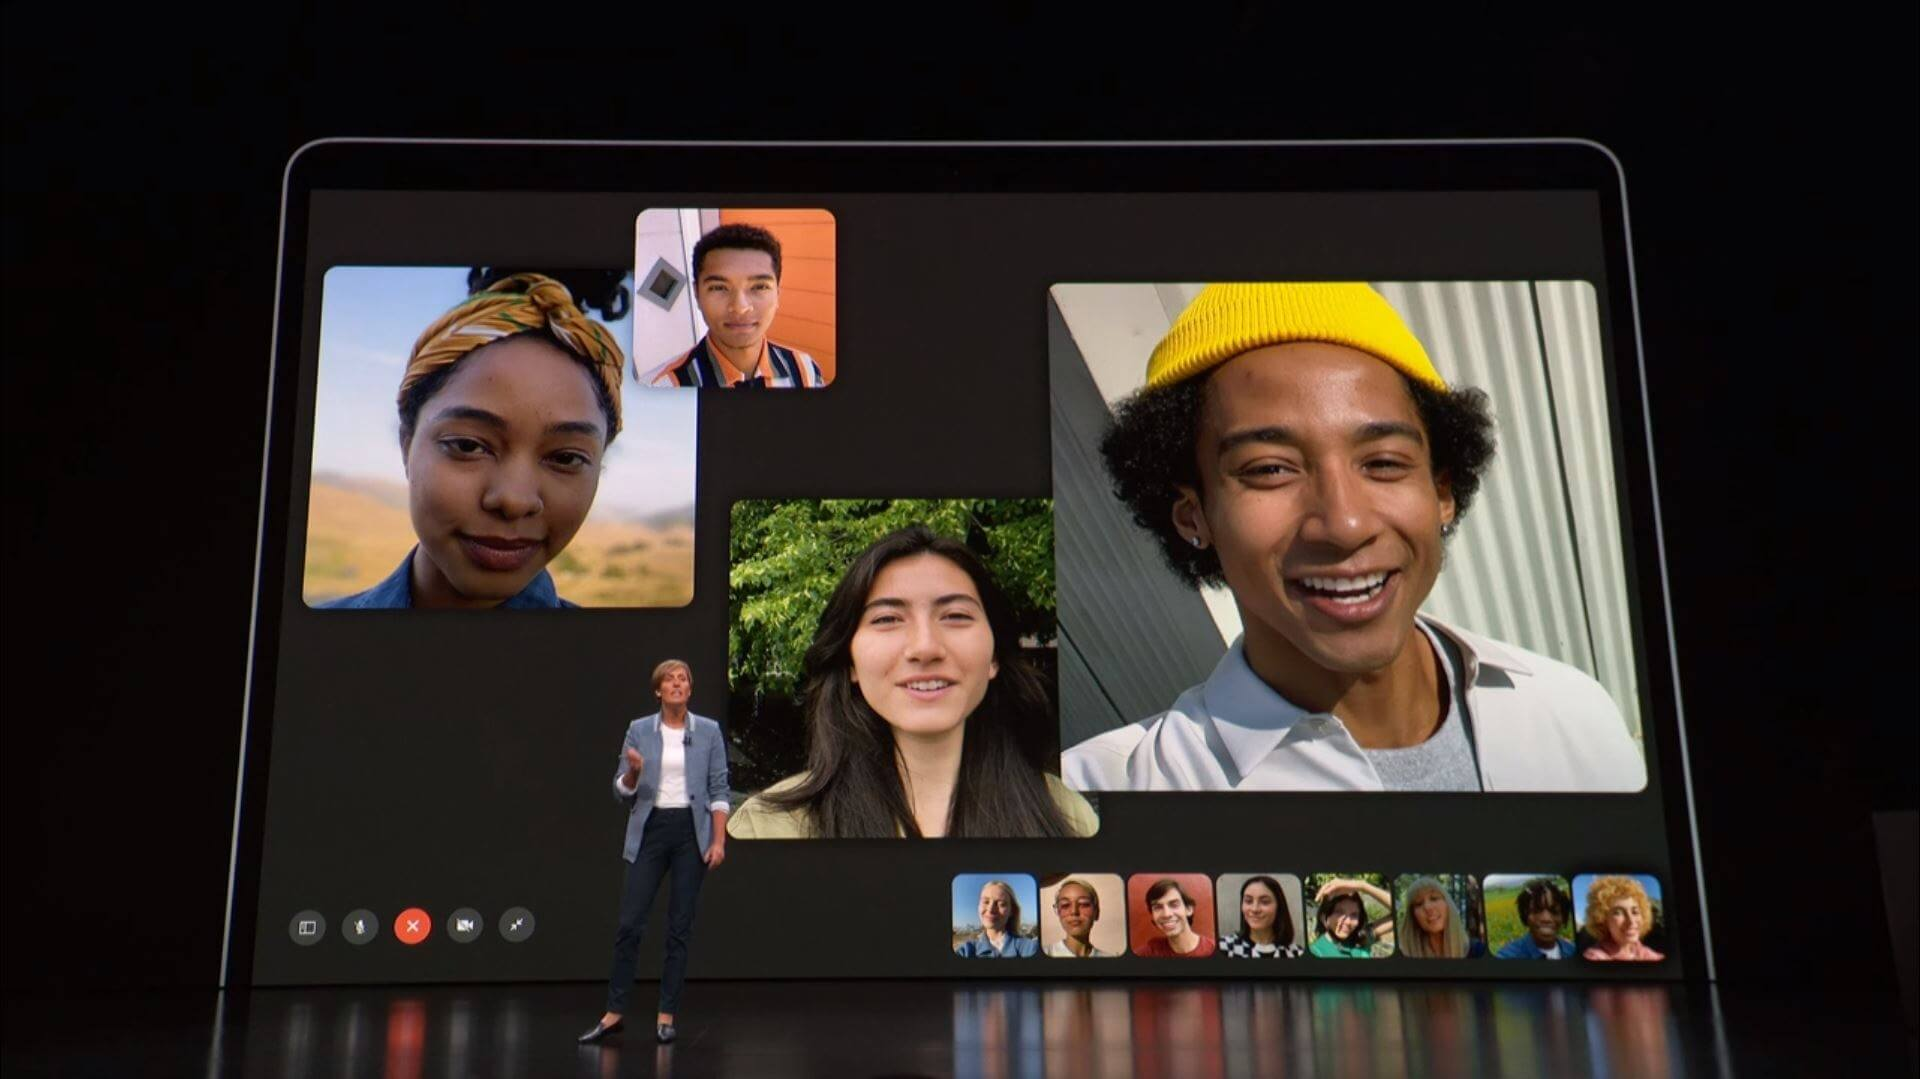 Apple Releases iOS 12.1.4 to Fix Group FaceTime Eavesdropping Bug